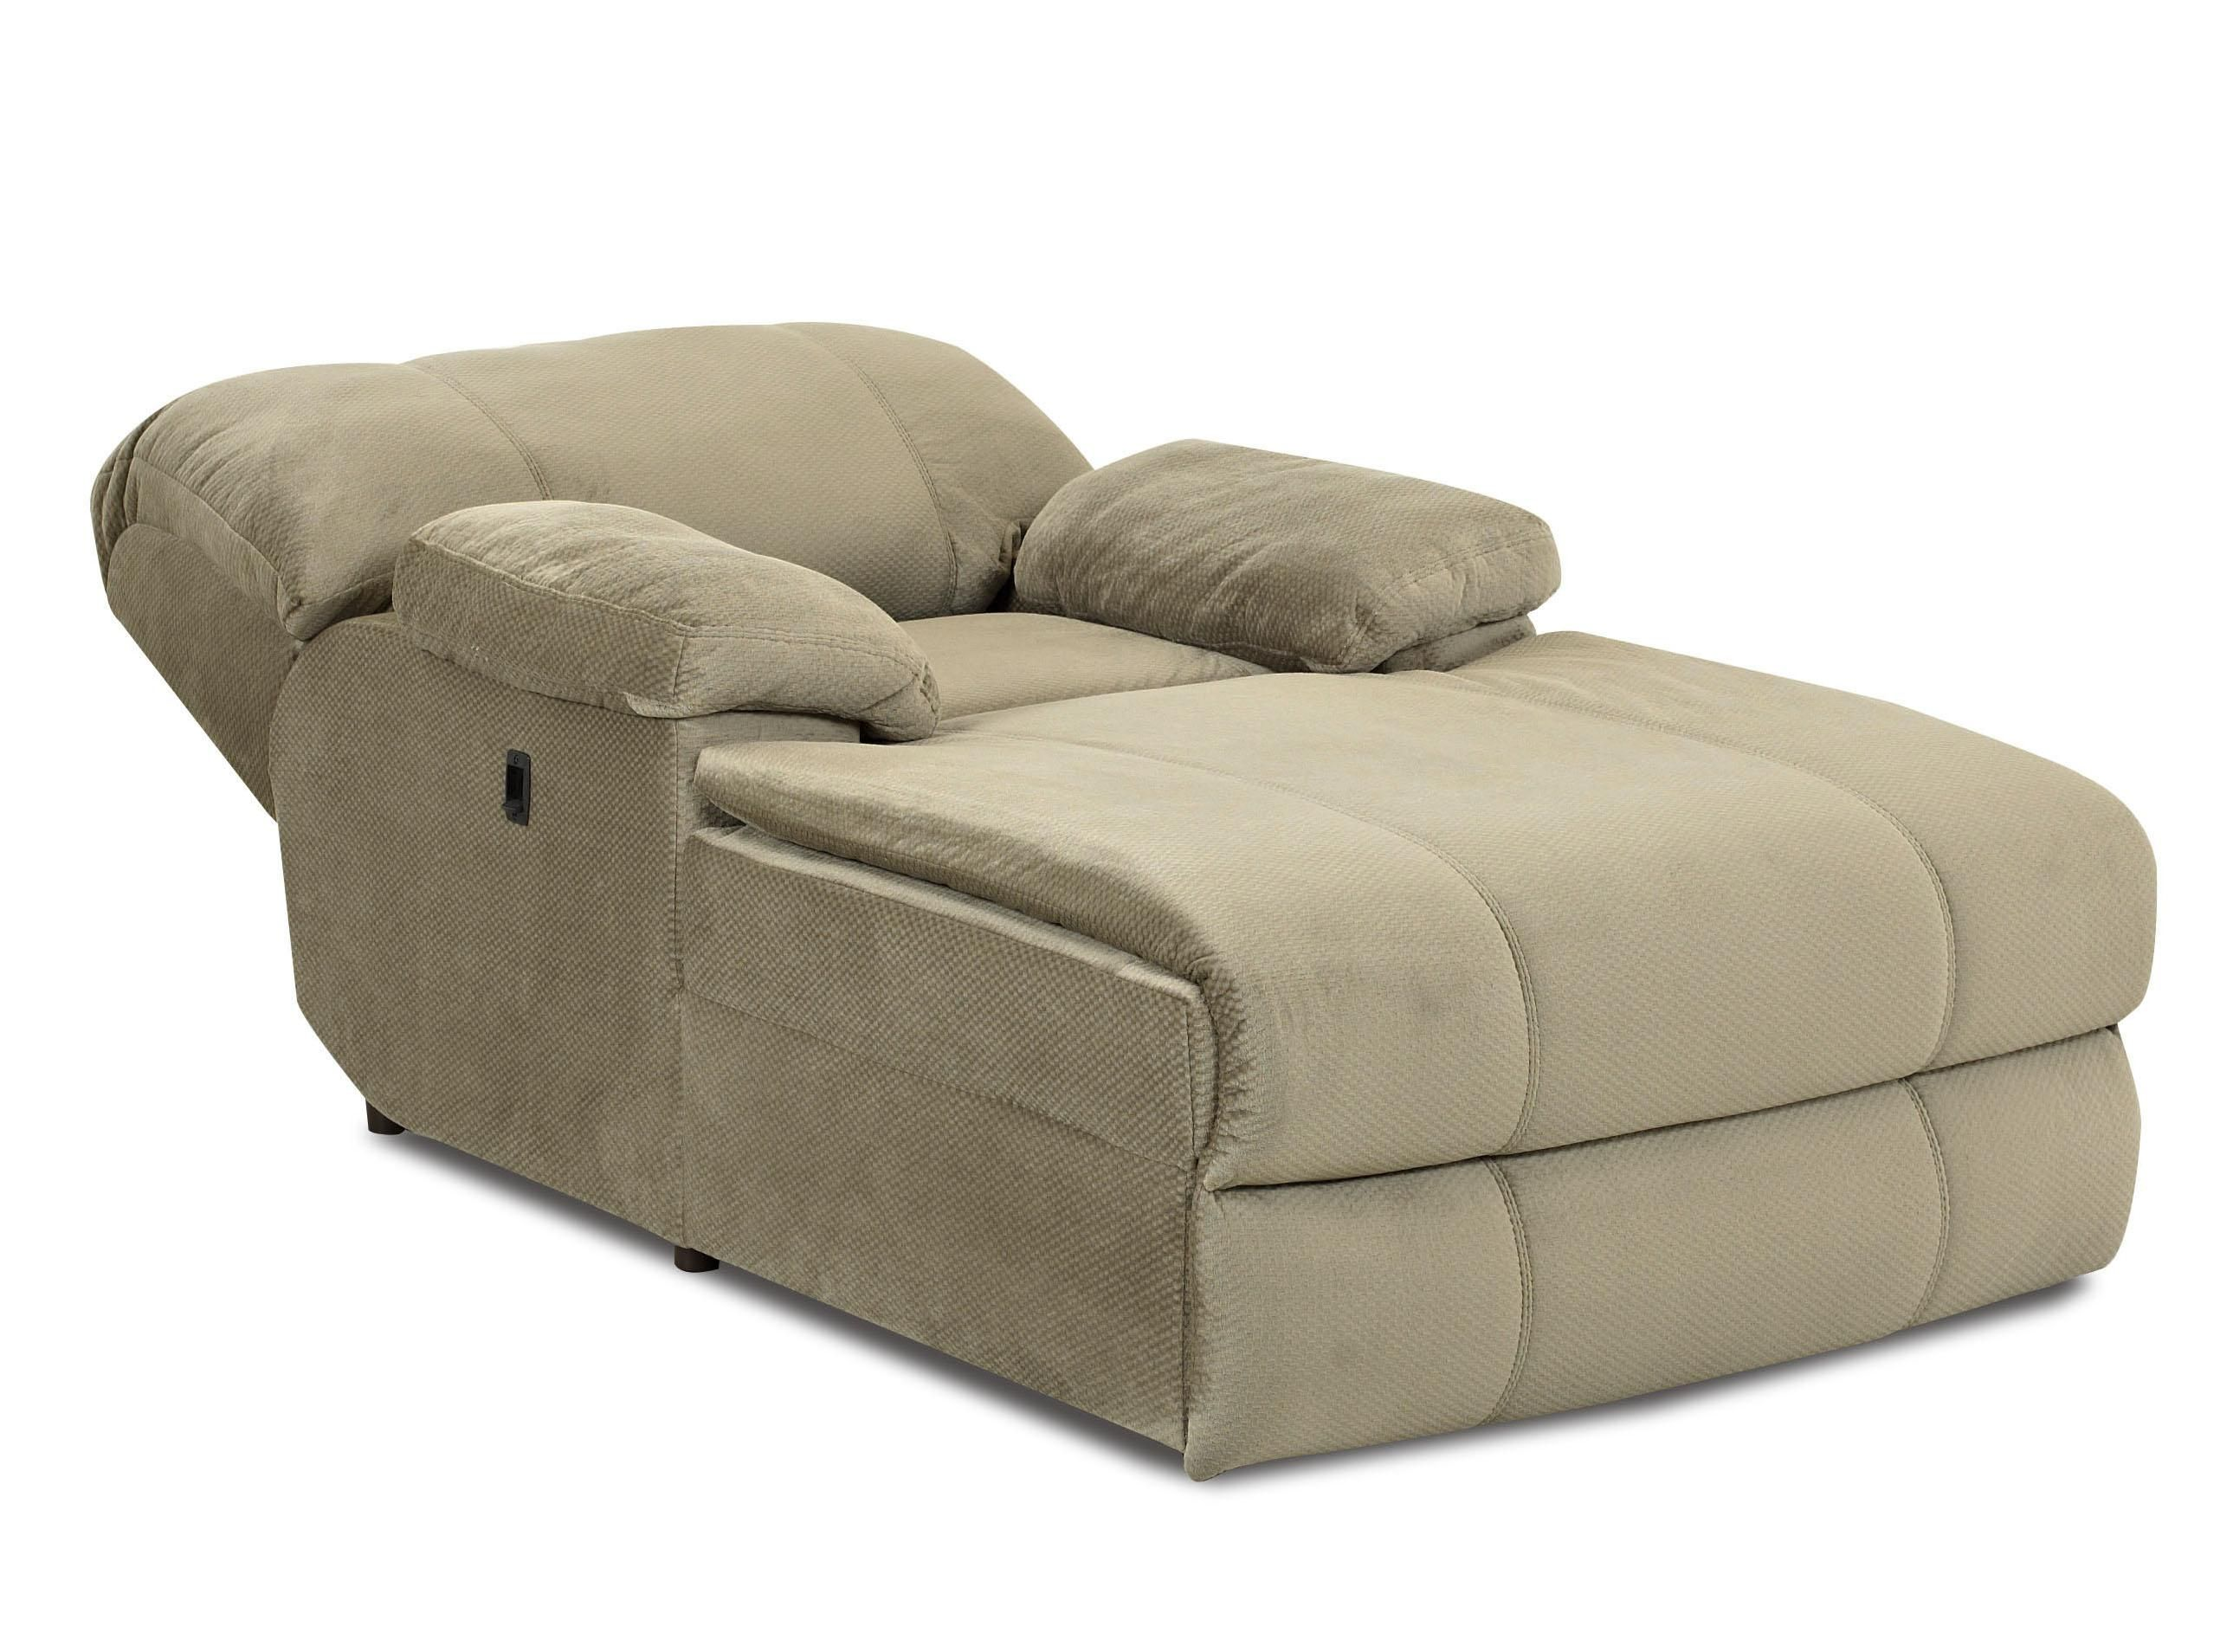 the blogbeen lounge of that comfort chaise you chairs need cheap gfyeppo collection